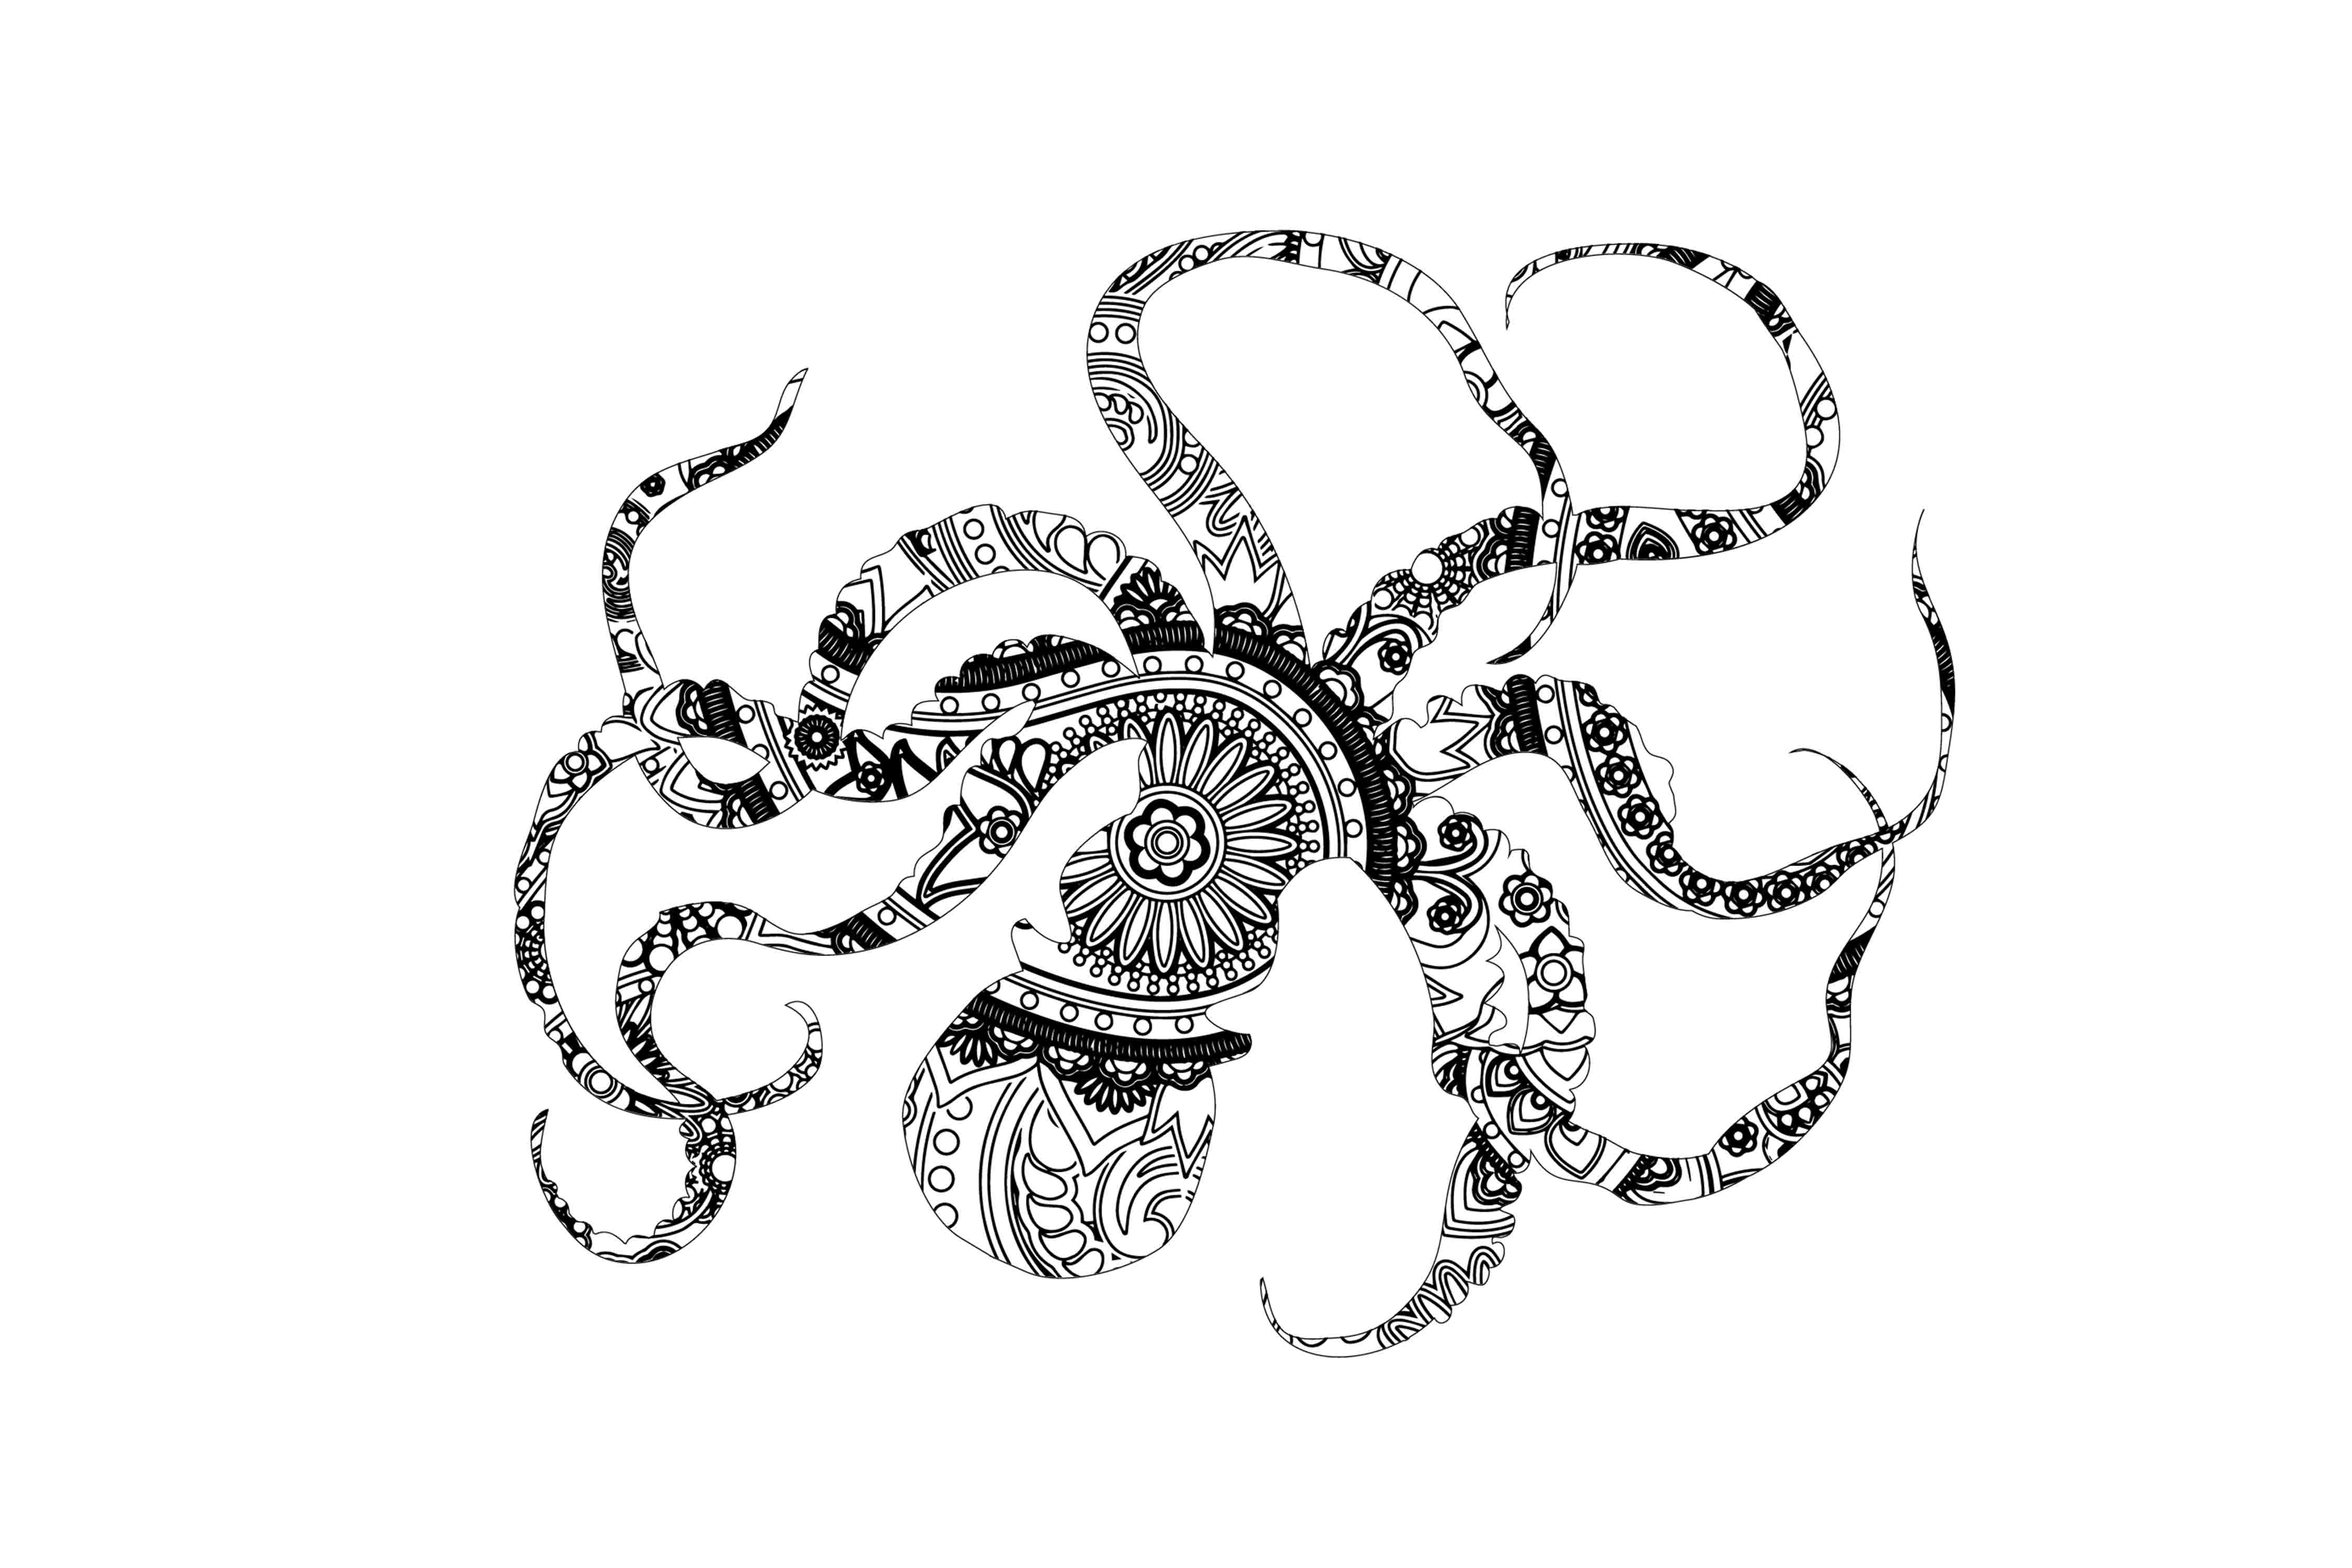 Download Free Mandala Octopus Graphic By Twelvepapers Creative Fabrica for Cricut Explore, Silhouette and other cutting machines.